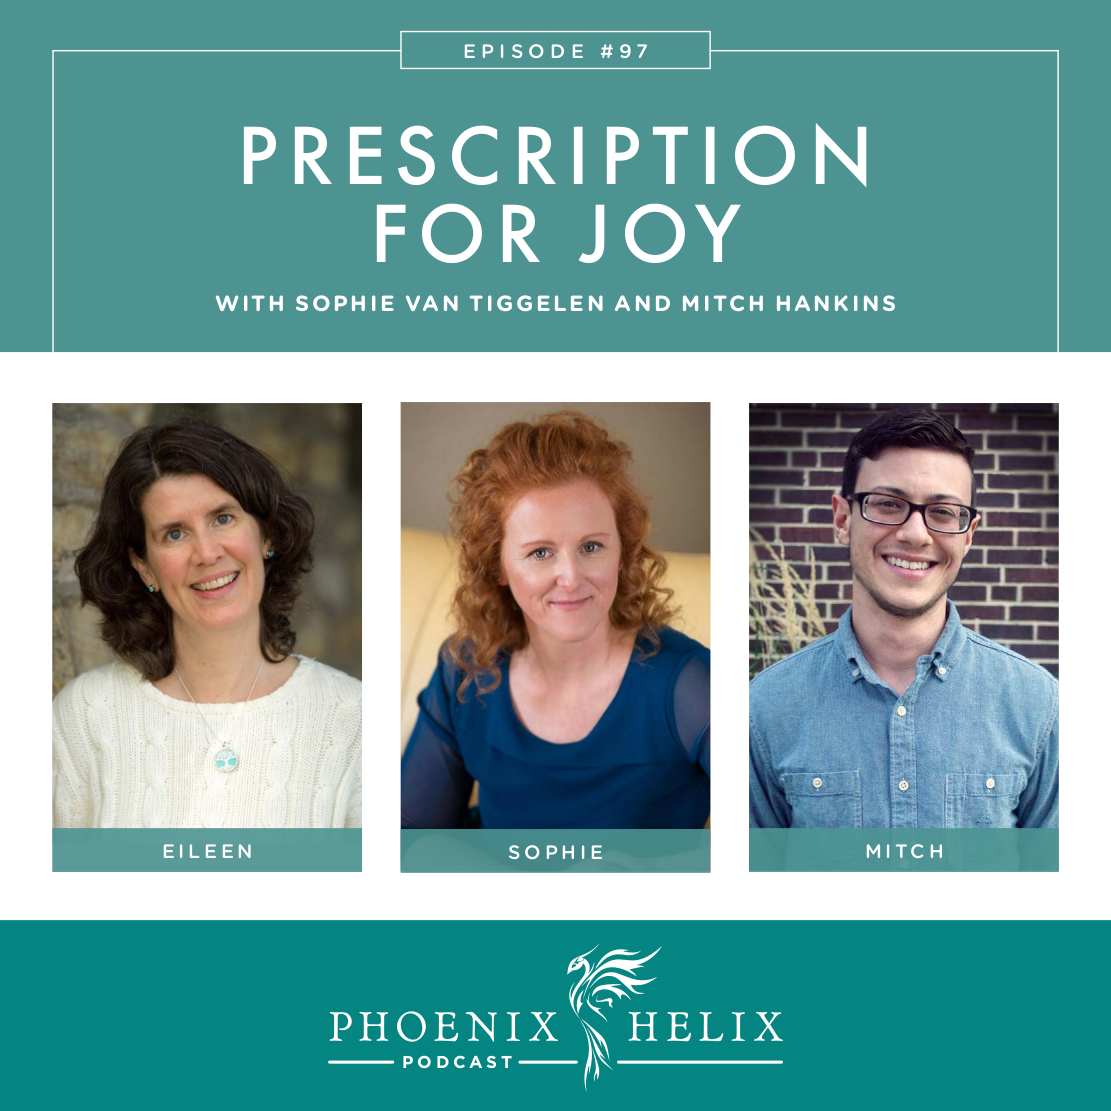 Prescription for Joy | Phoenix Helix Podcast